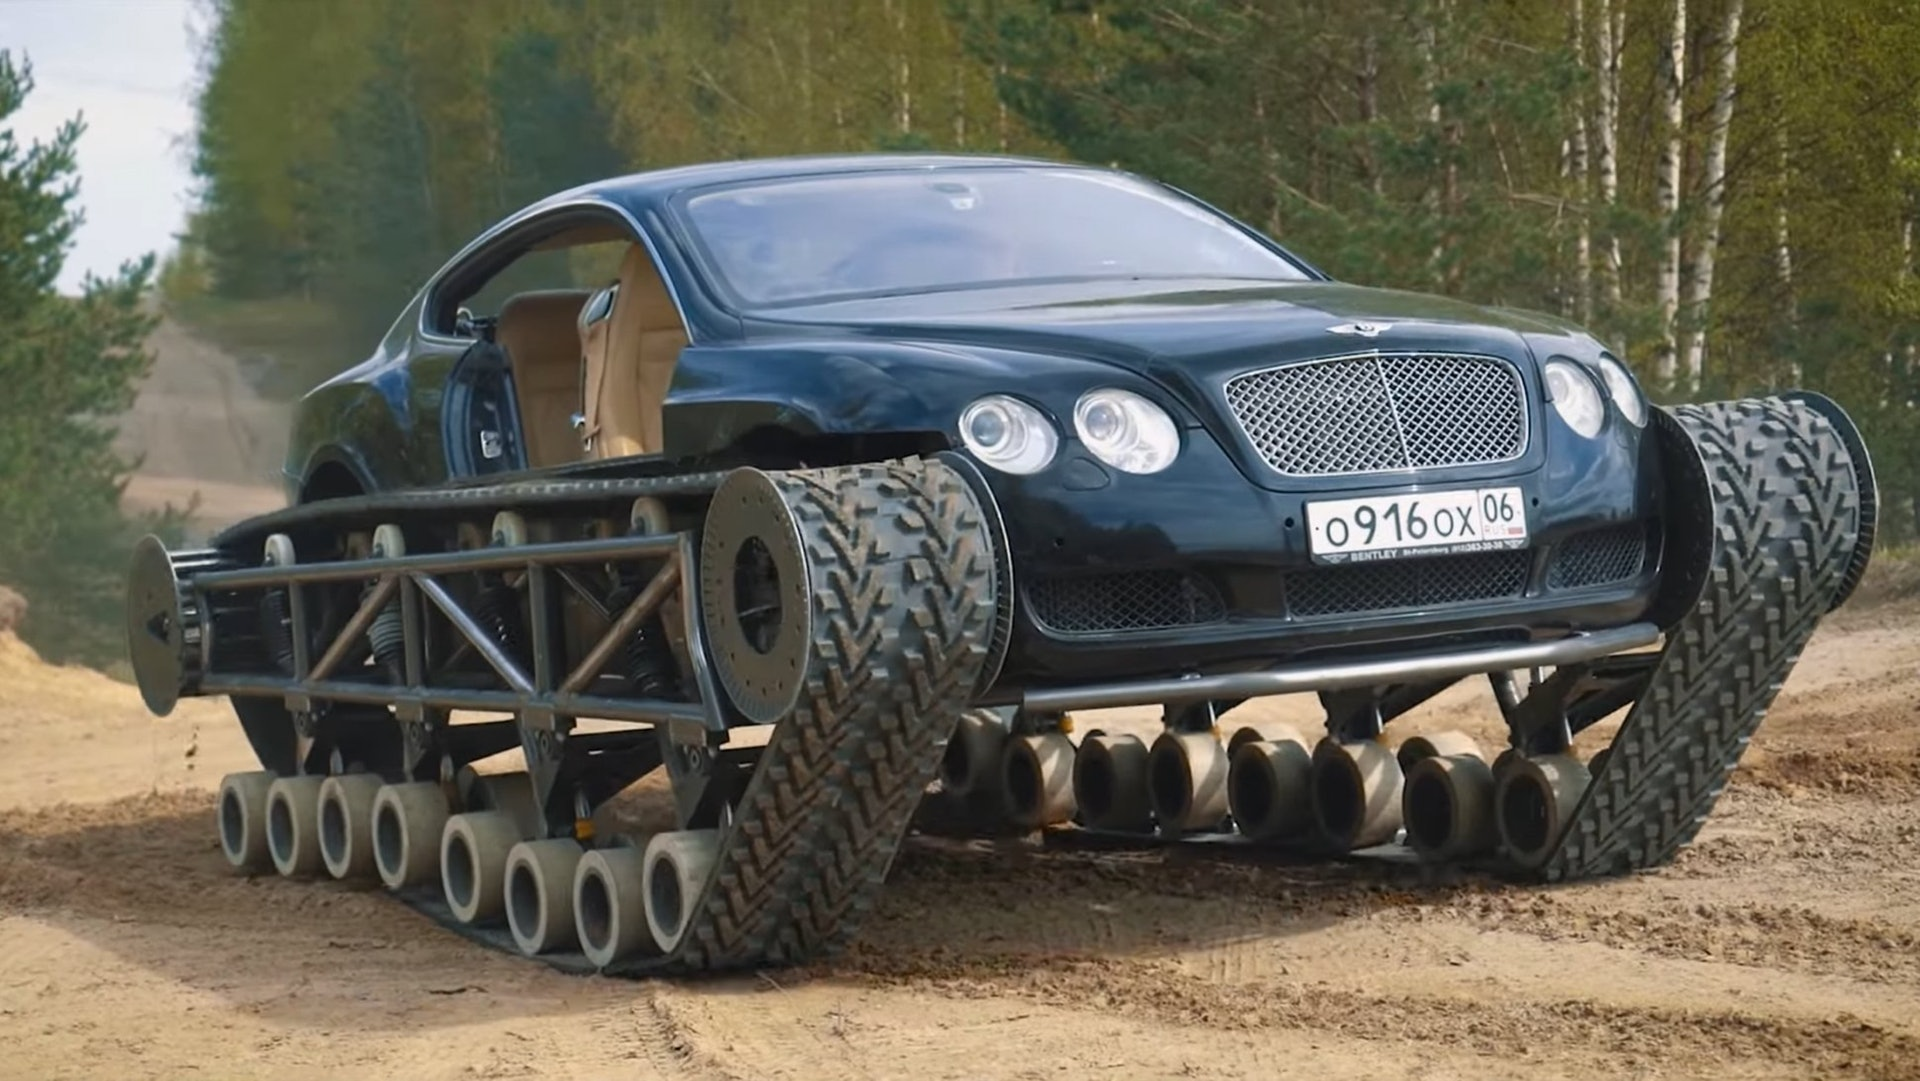 VIDEO: Rusi prestavali Bentley na tank!